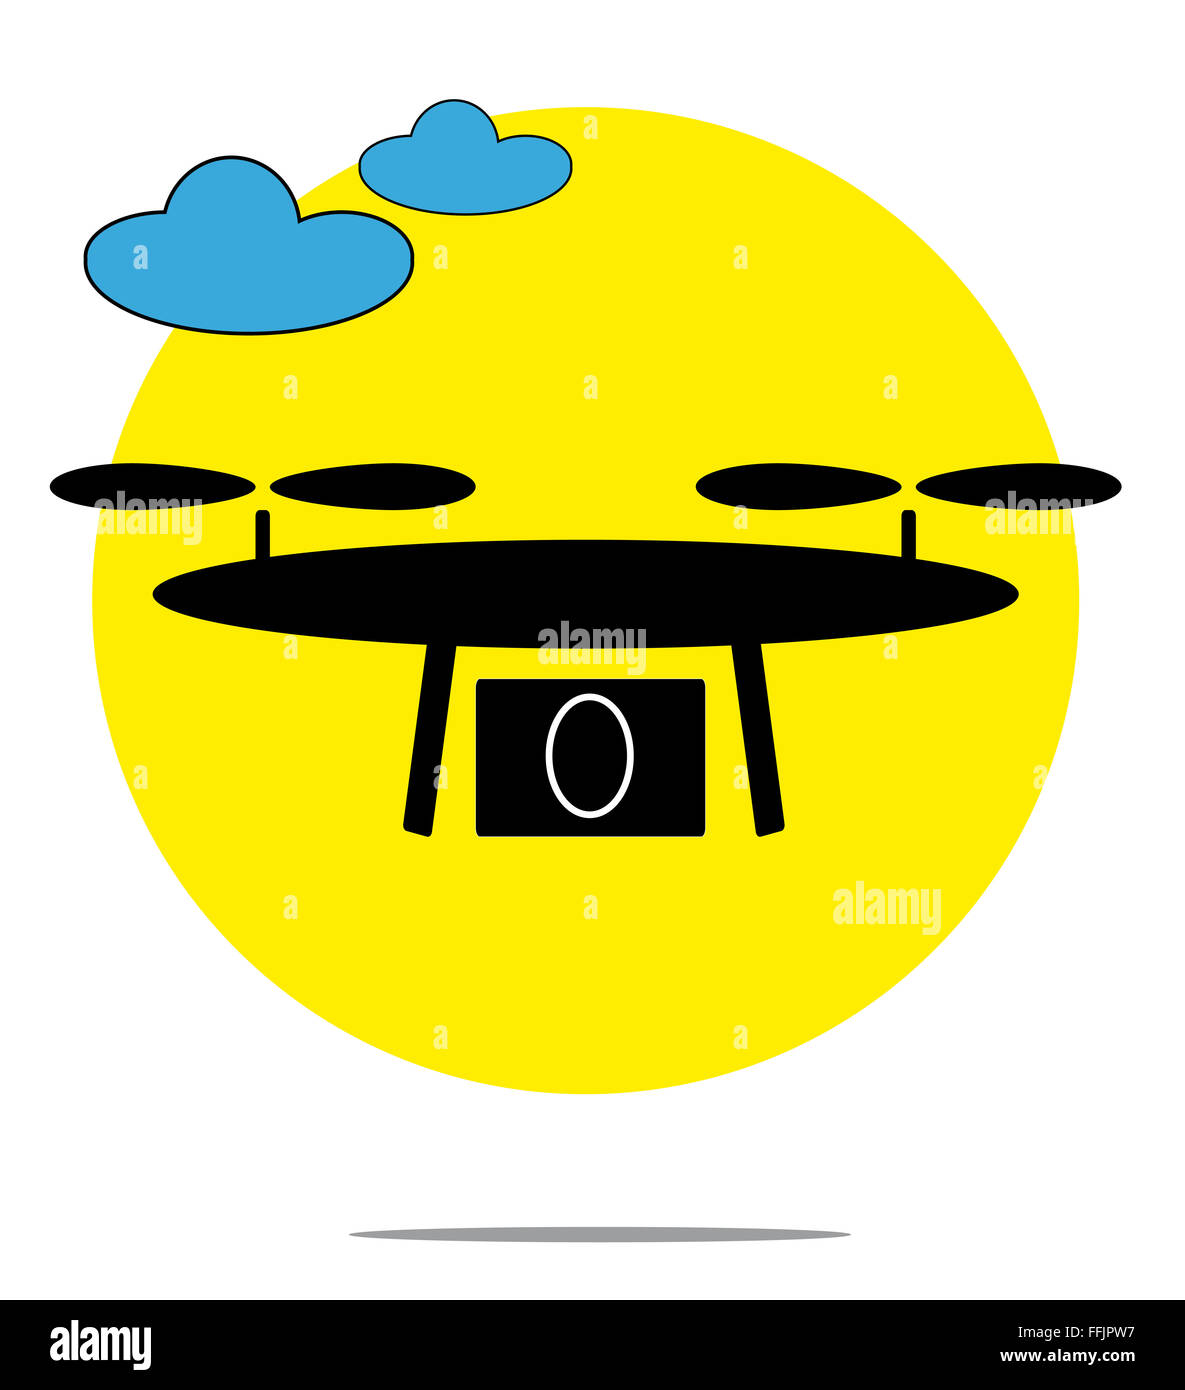 Illustration of drone with clouds and yellow circle background - Stock Image